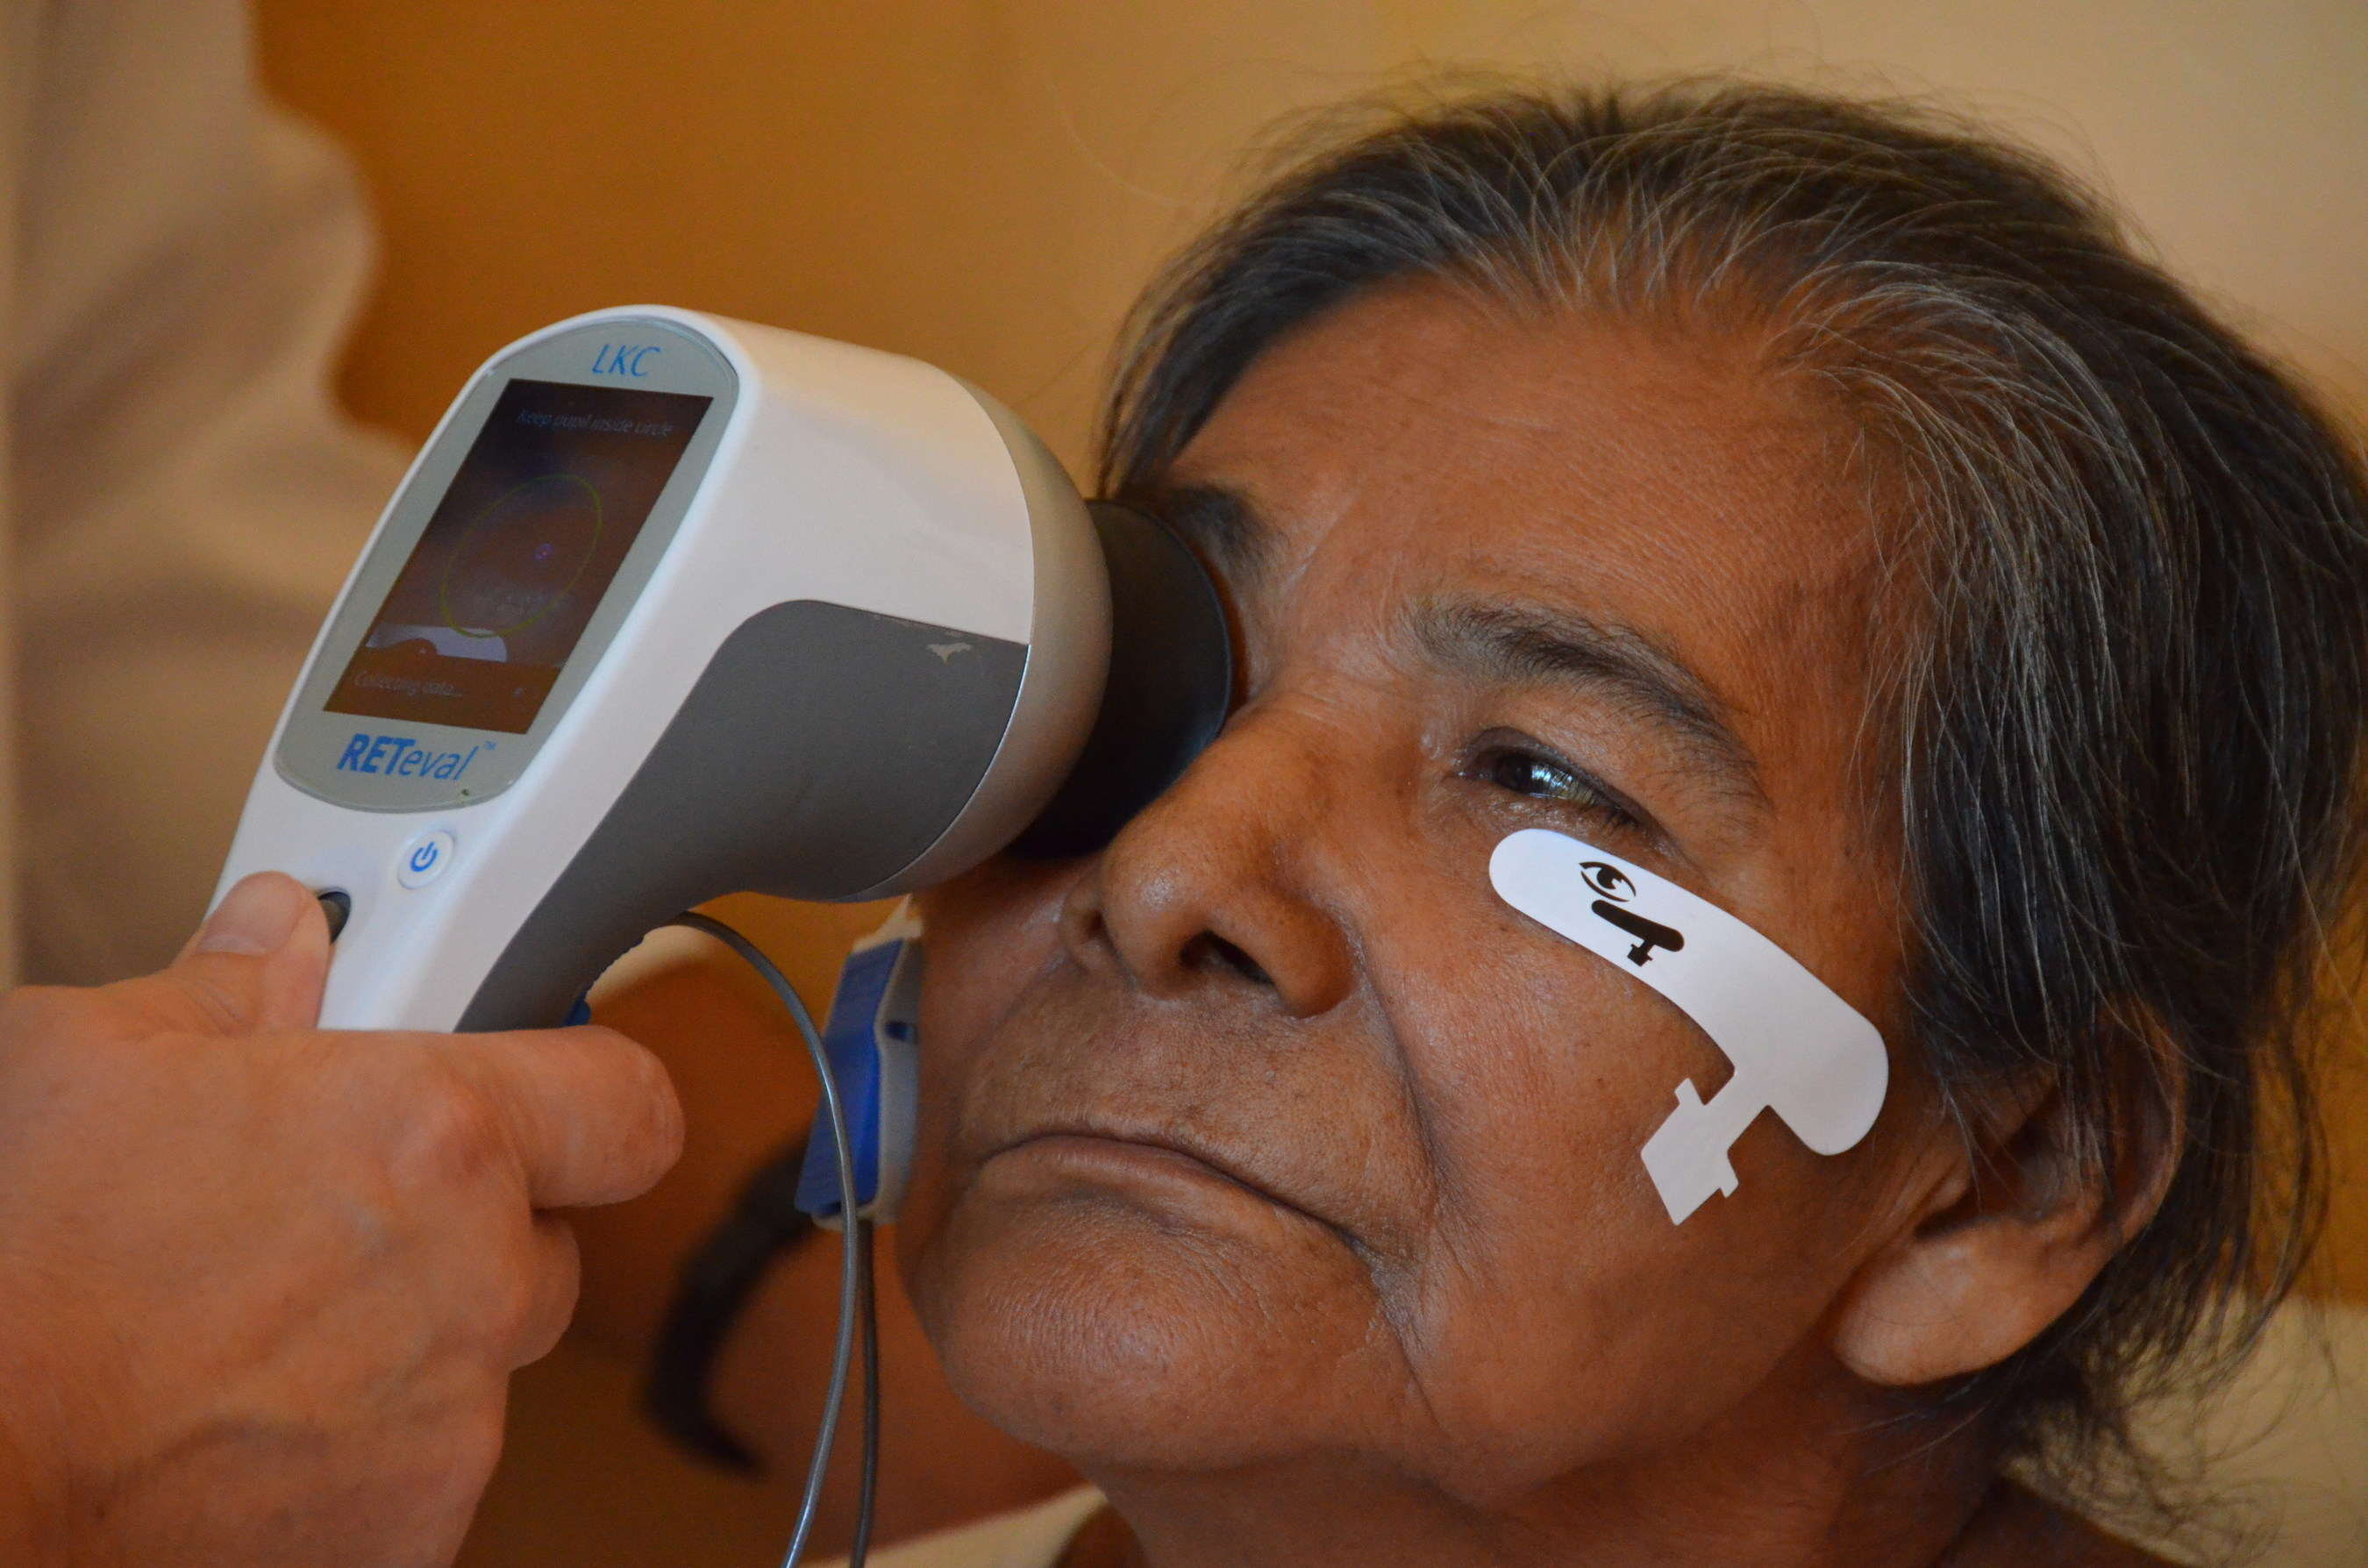 In a Nicaraguan eye clinic, the functioning of this woman's retina is tested with a RETeval(TM) ERG/VEP visual electrophysiology device.